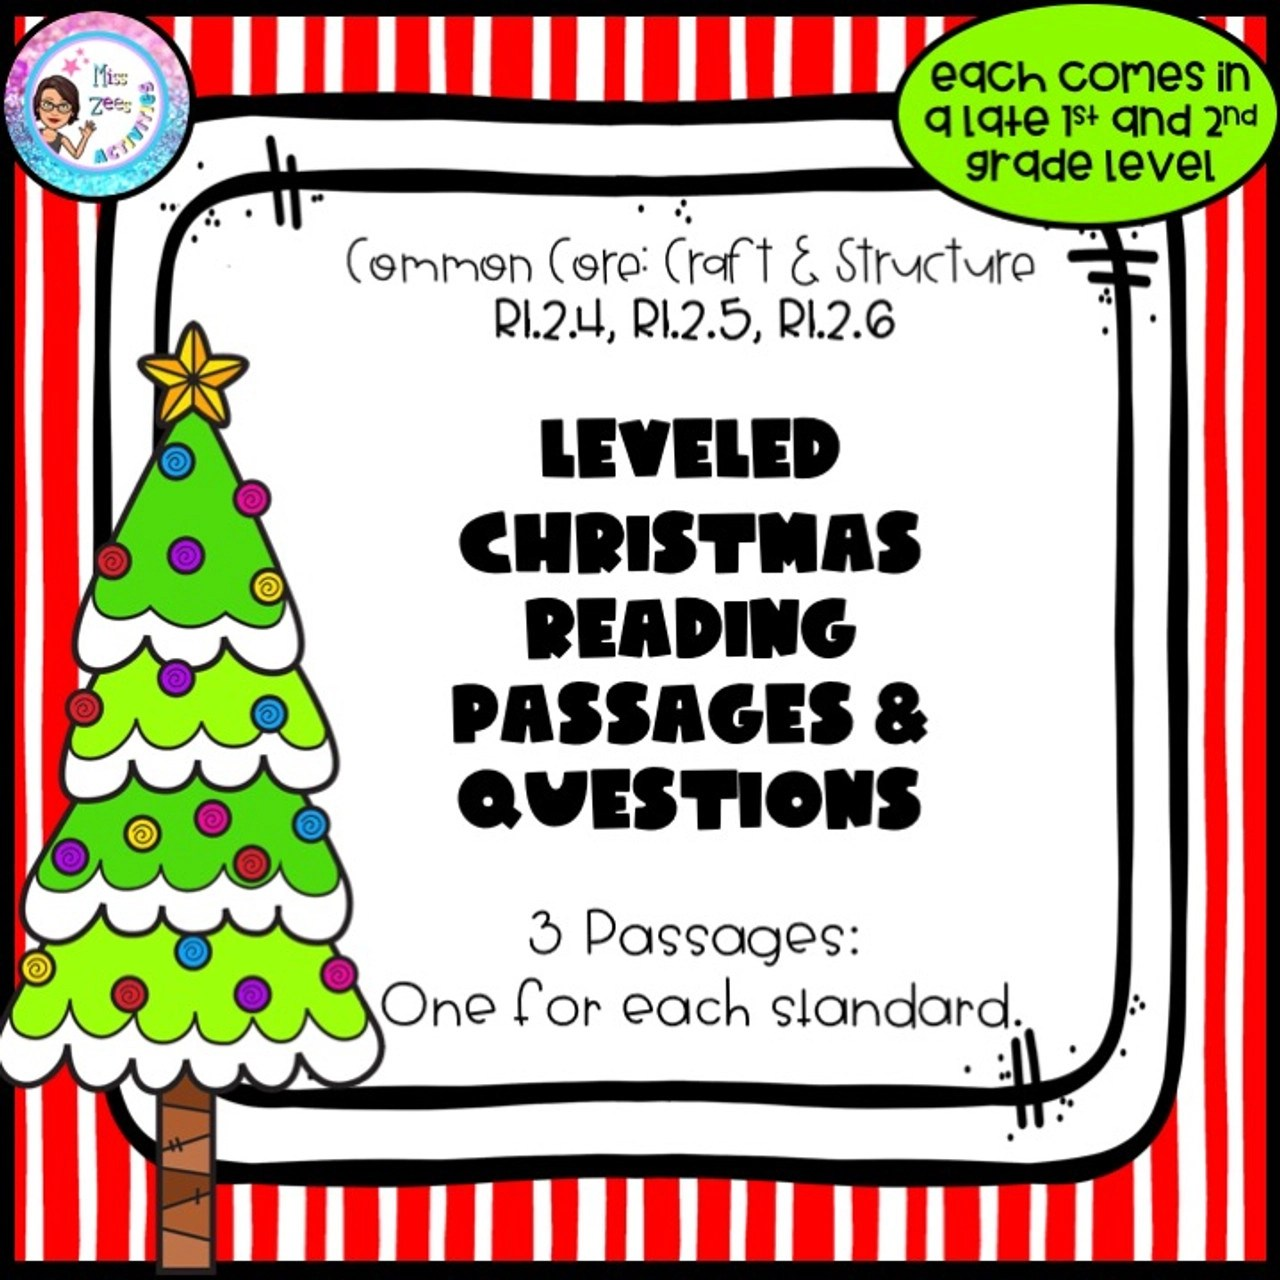 small resolution of 3 Leveled Christmas Reading Passages and Questions - Craft and Structure -  Amped Up Learning